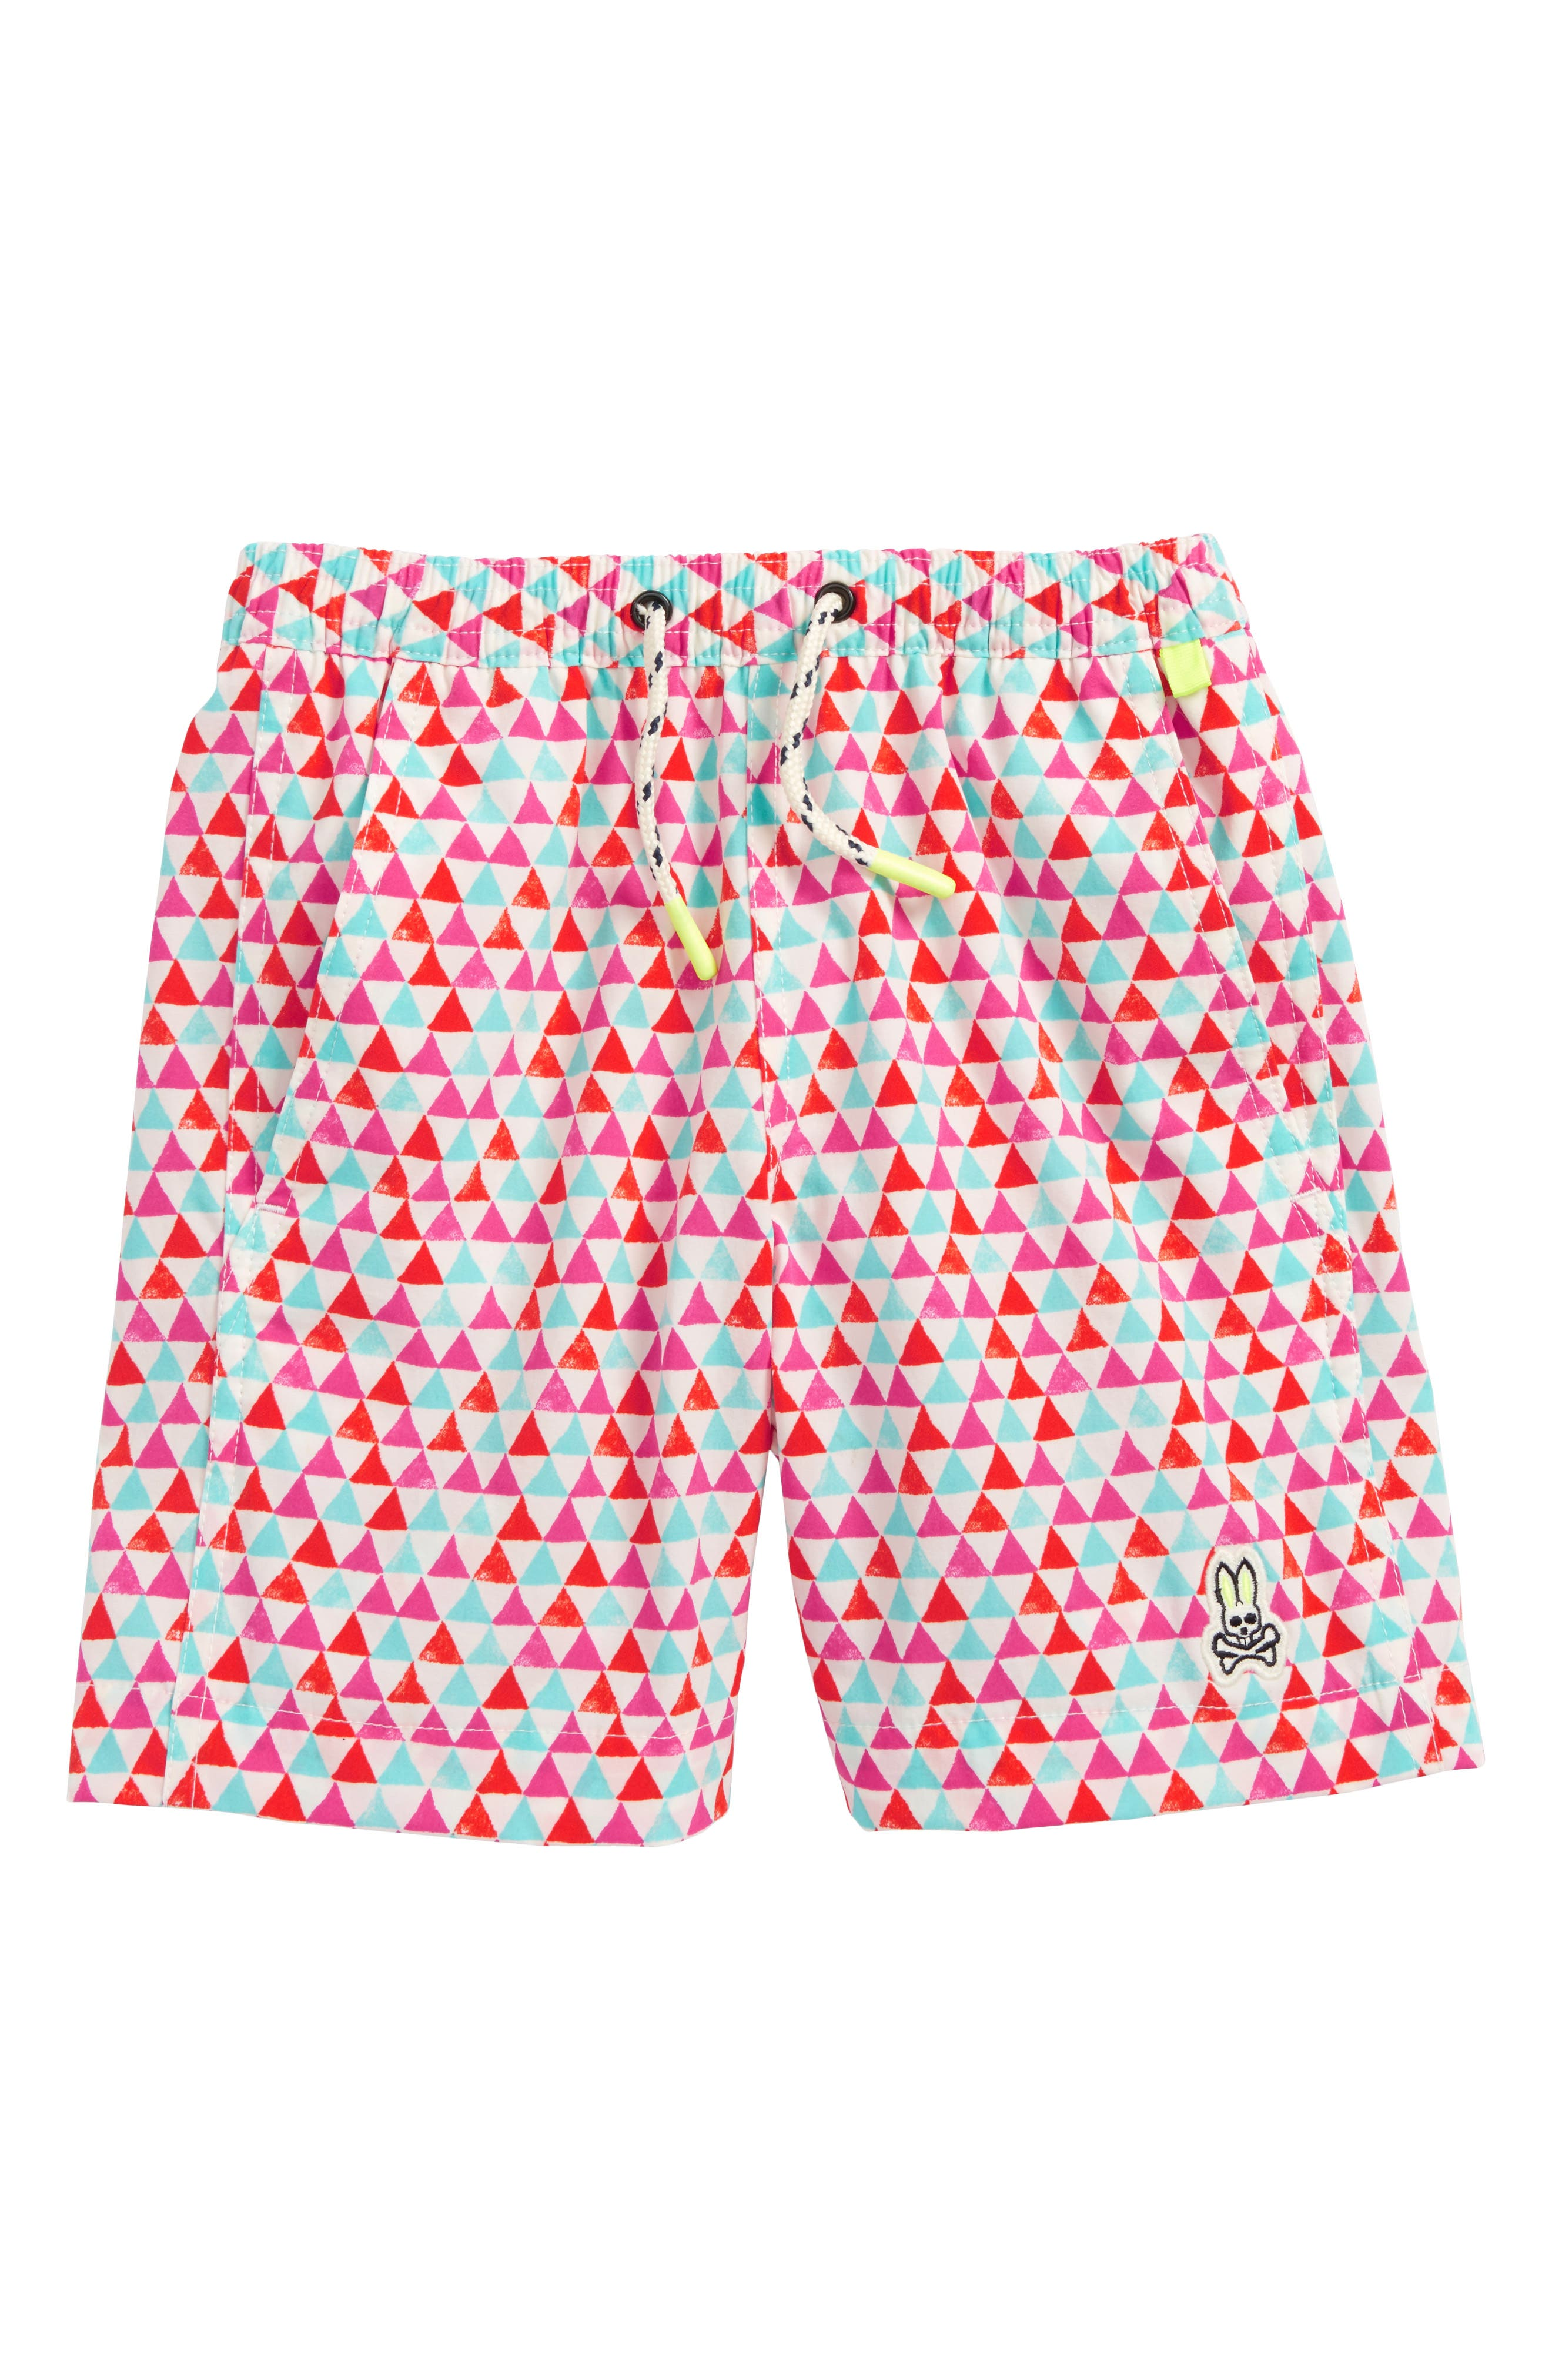 Print Swim Trunks,                             Main thumbnail 1, color,                             659